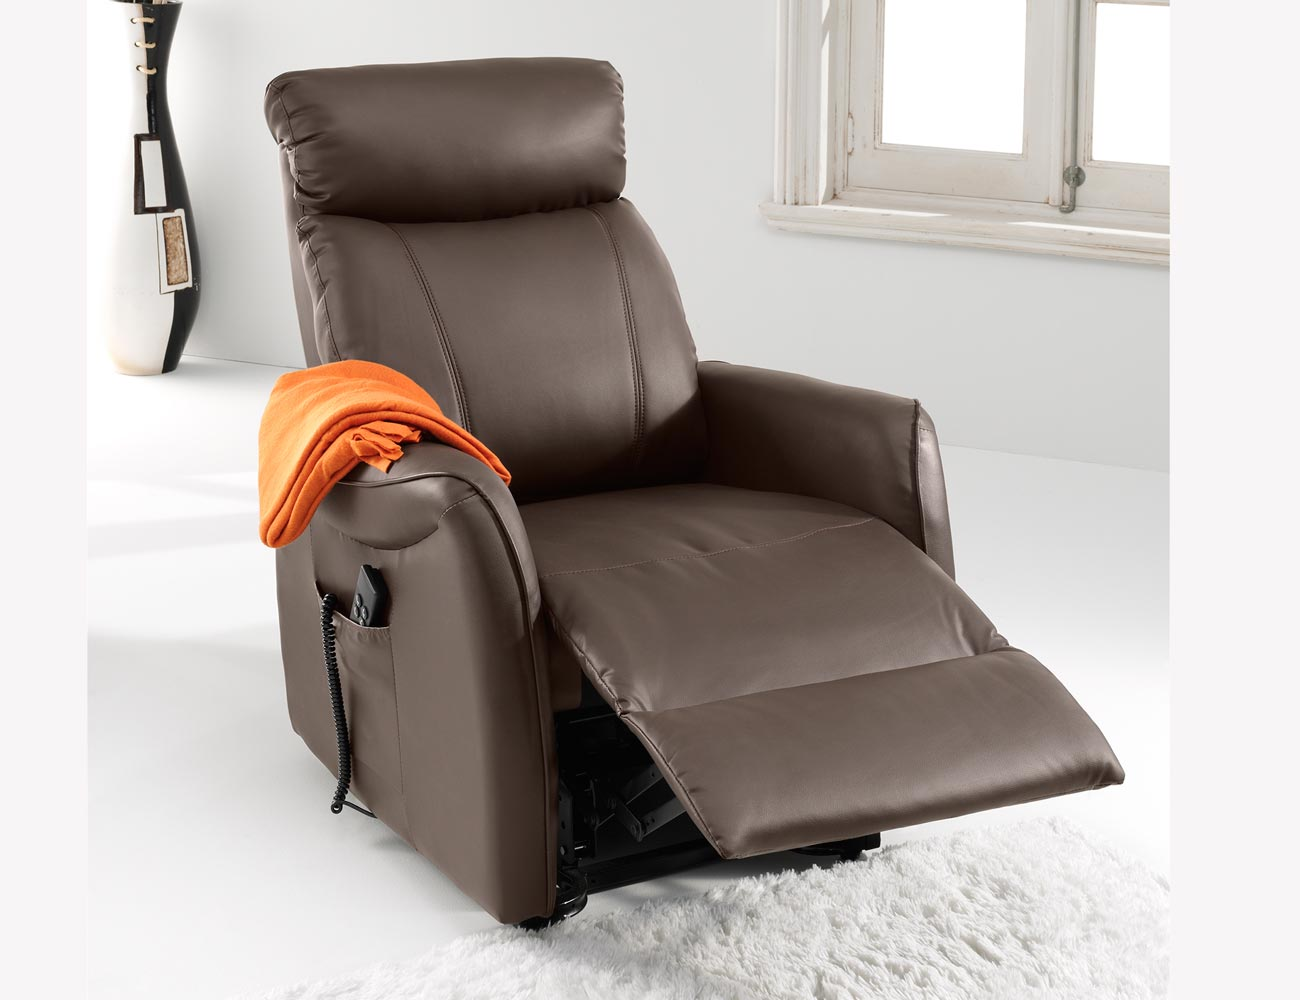 Sillon relax dos motores power lift levanta personas simil piel